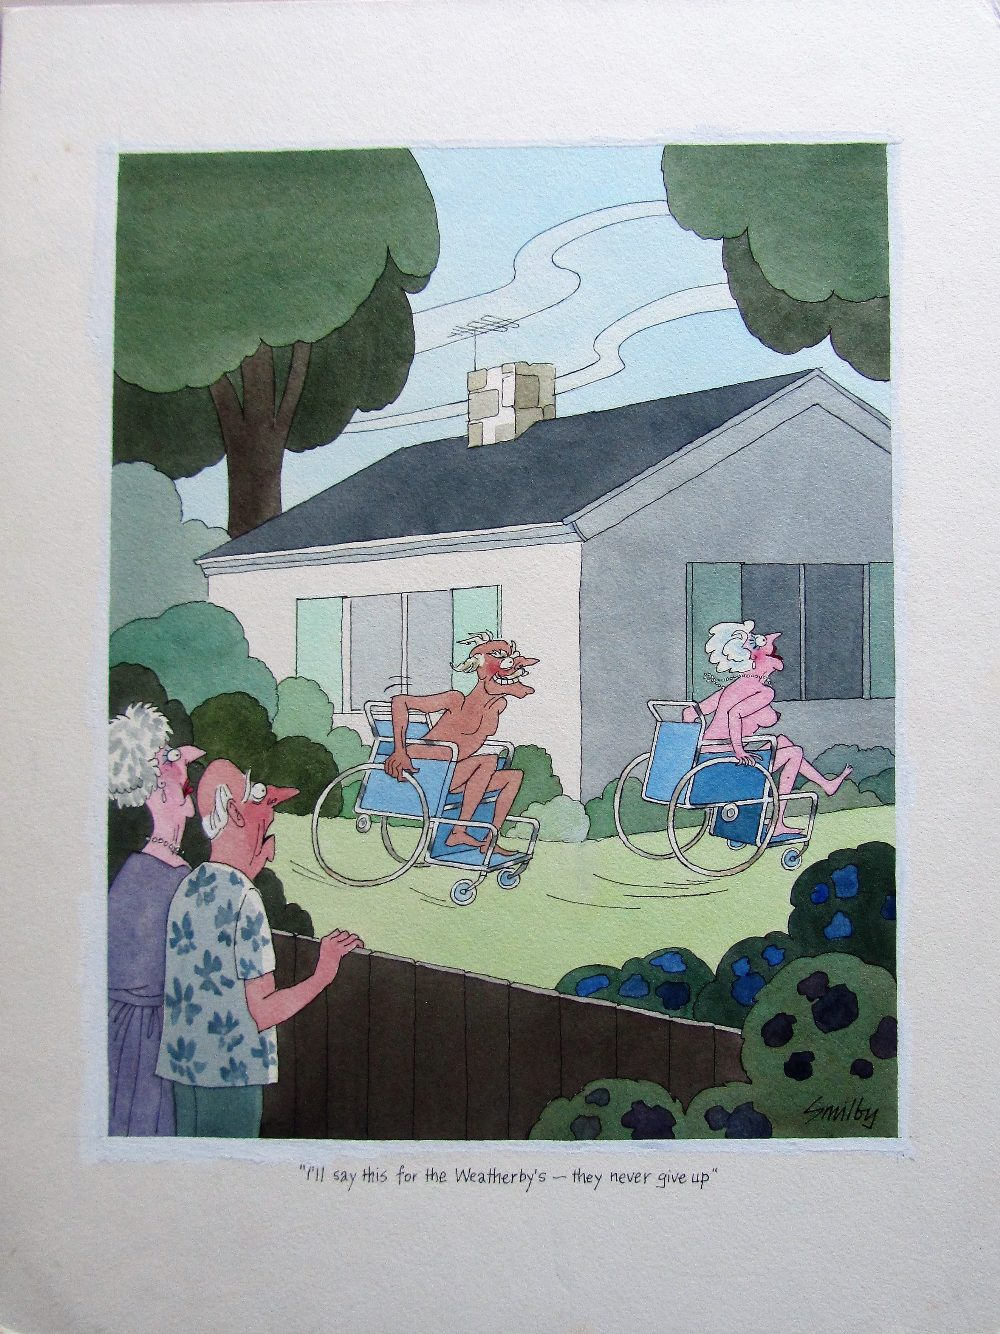 Lot 56 - Smilby, Francis Wilford-Smith 'I'll say this for the Weatherby's - they never give up'